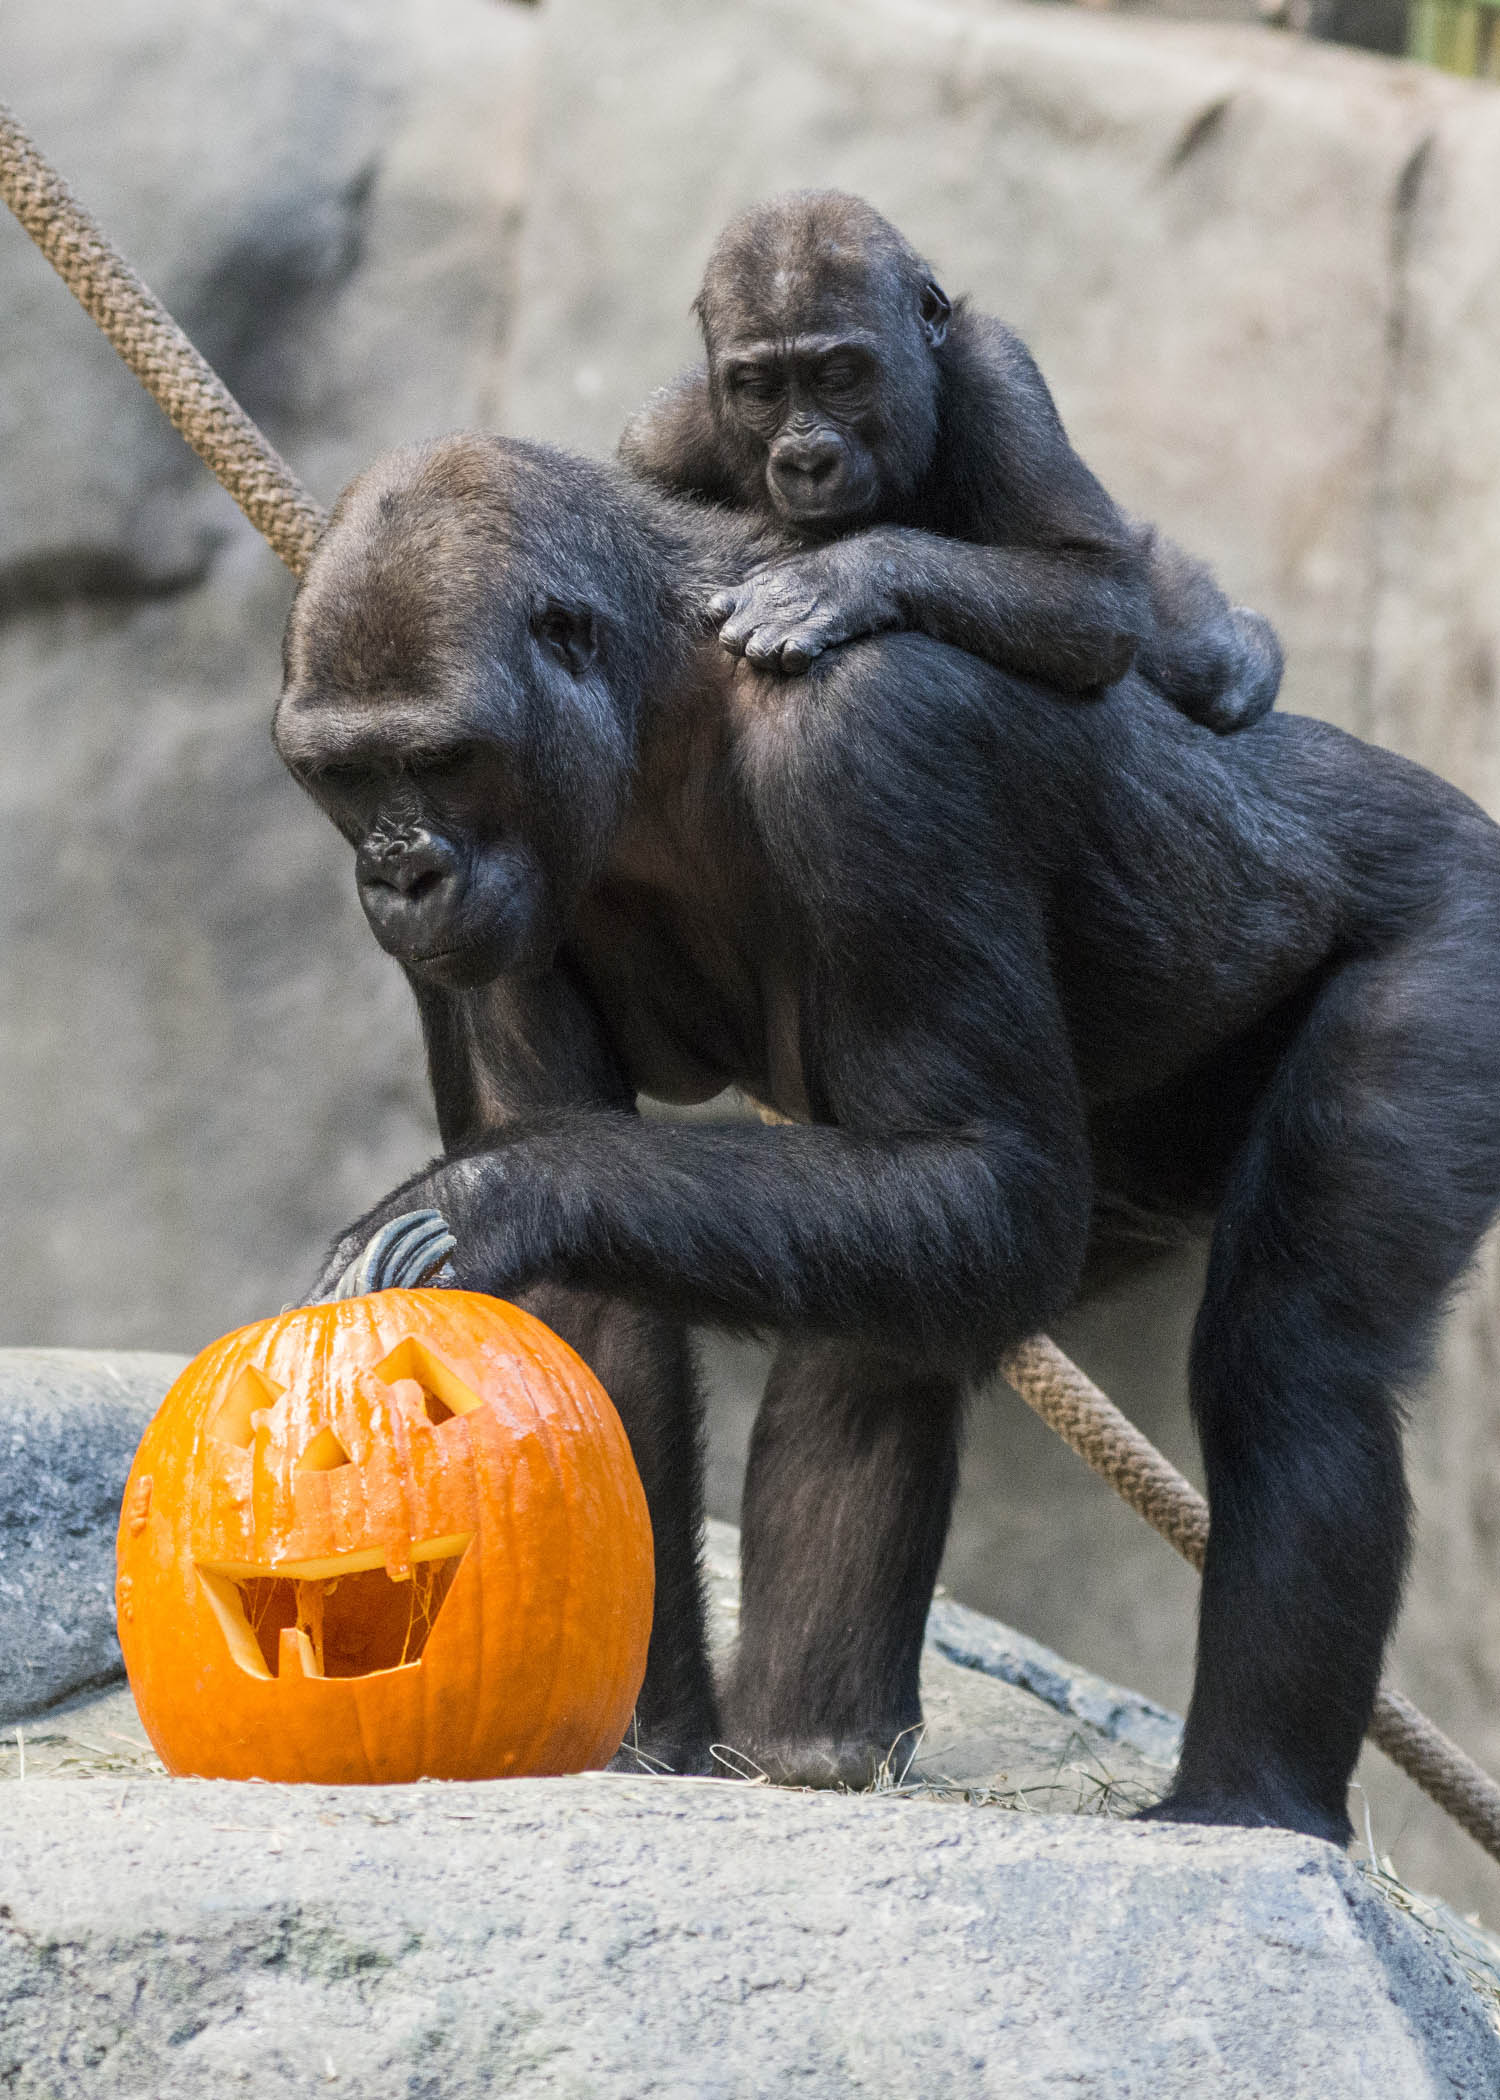 "<div class=""meta image-caption""><div class=""origin-logo origin-image wls""><span>WLS</span></div><span class=""caption-text"">Kamba, a female western lowland gorilla at Brookfield Zoo, investigates a Halloween treat while her son Zachary looks on. (Kelly Tone/Chicago Zoological Society)</span></div>"